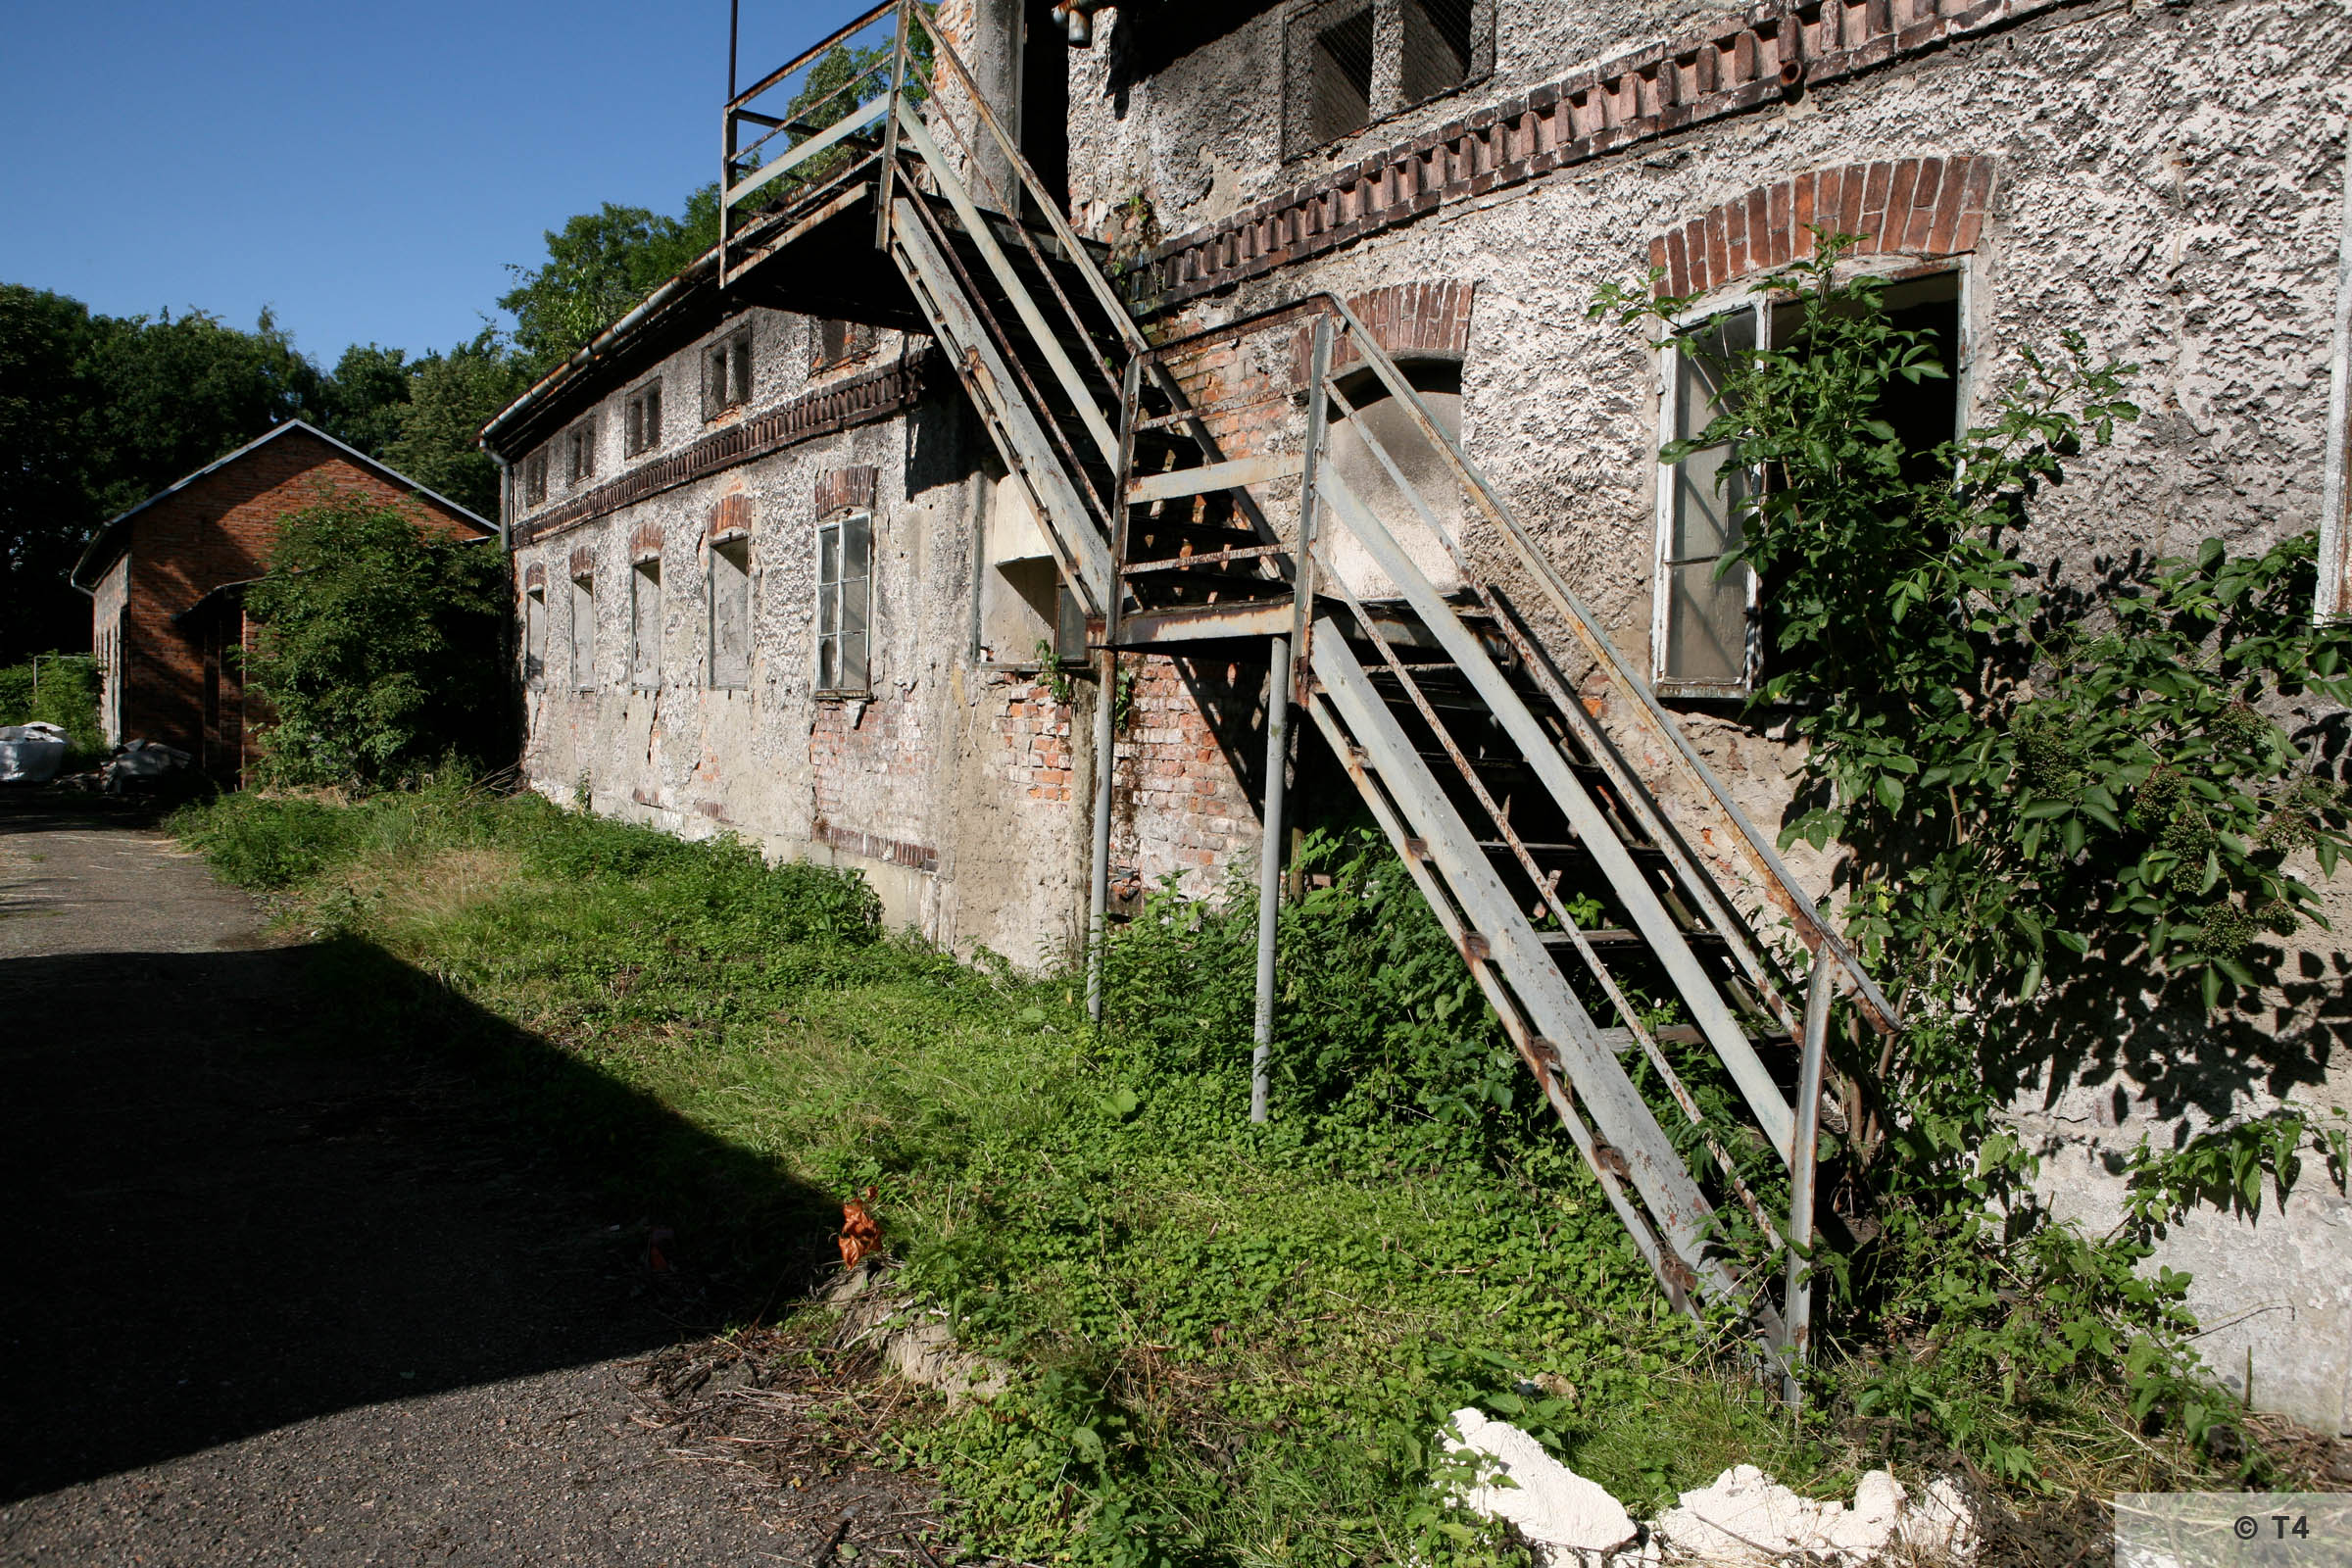 View of extension building to the left of the single storey stable building where prisoners lived. 2007 T4 9346